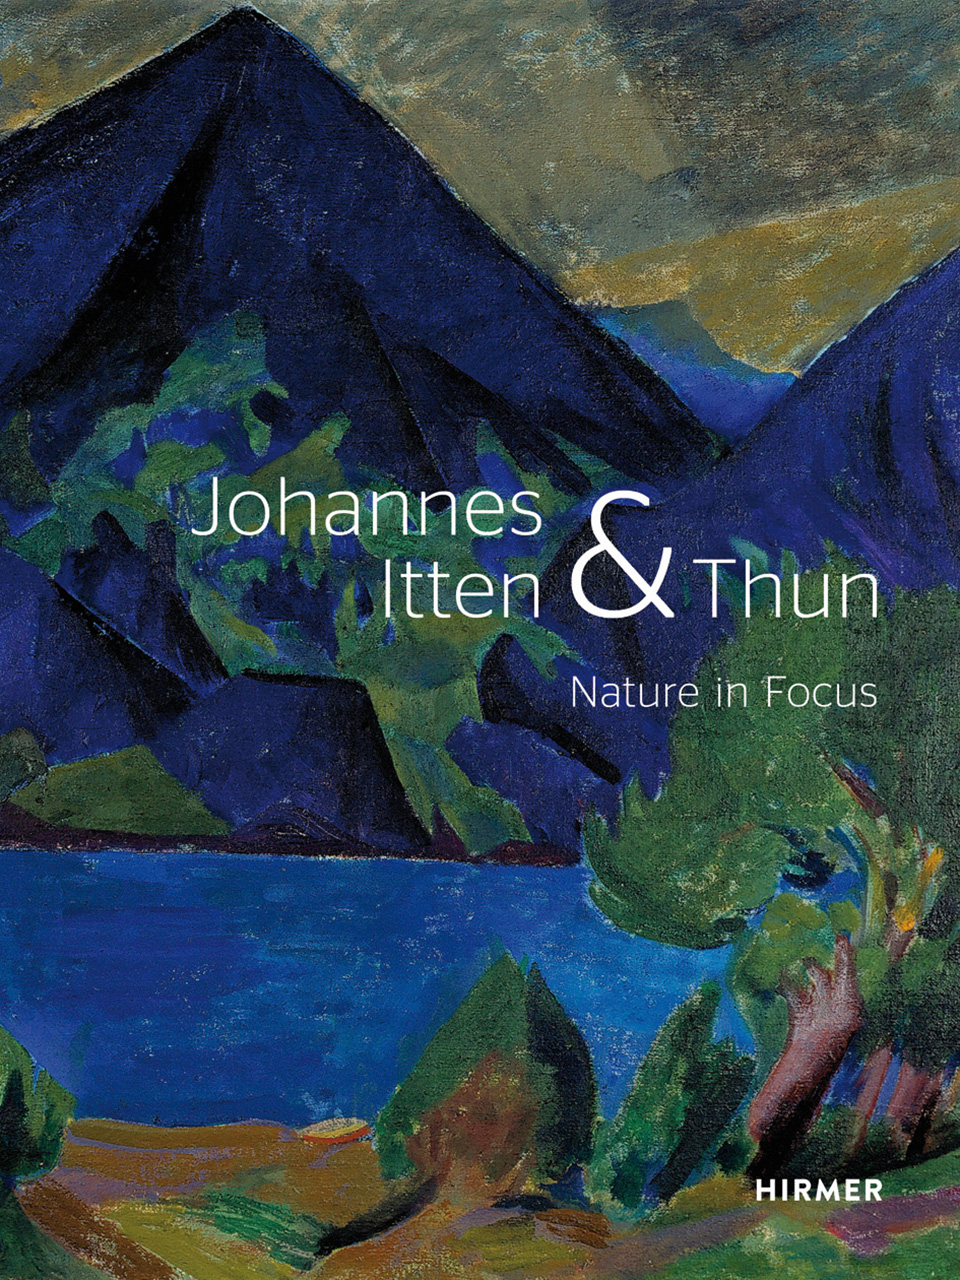 Johannes Itten and Thun: Nature in Focus